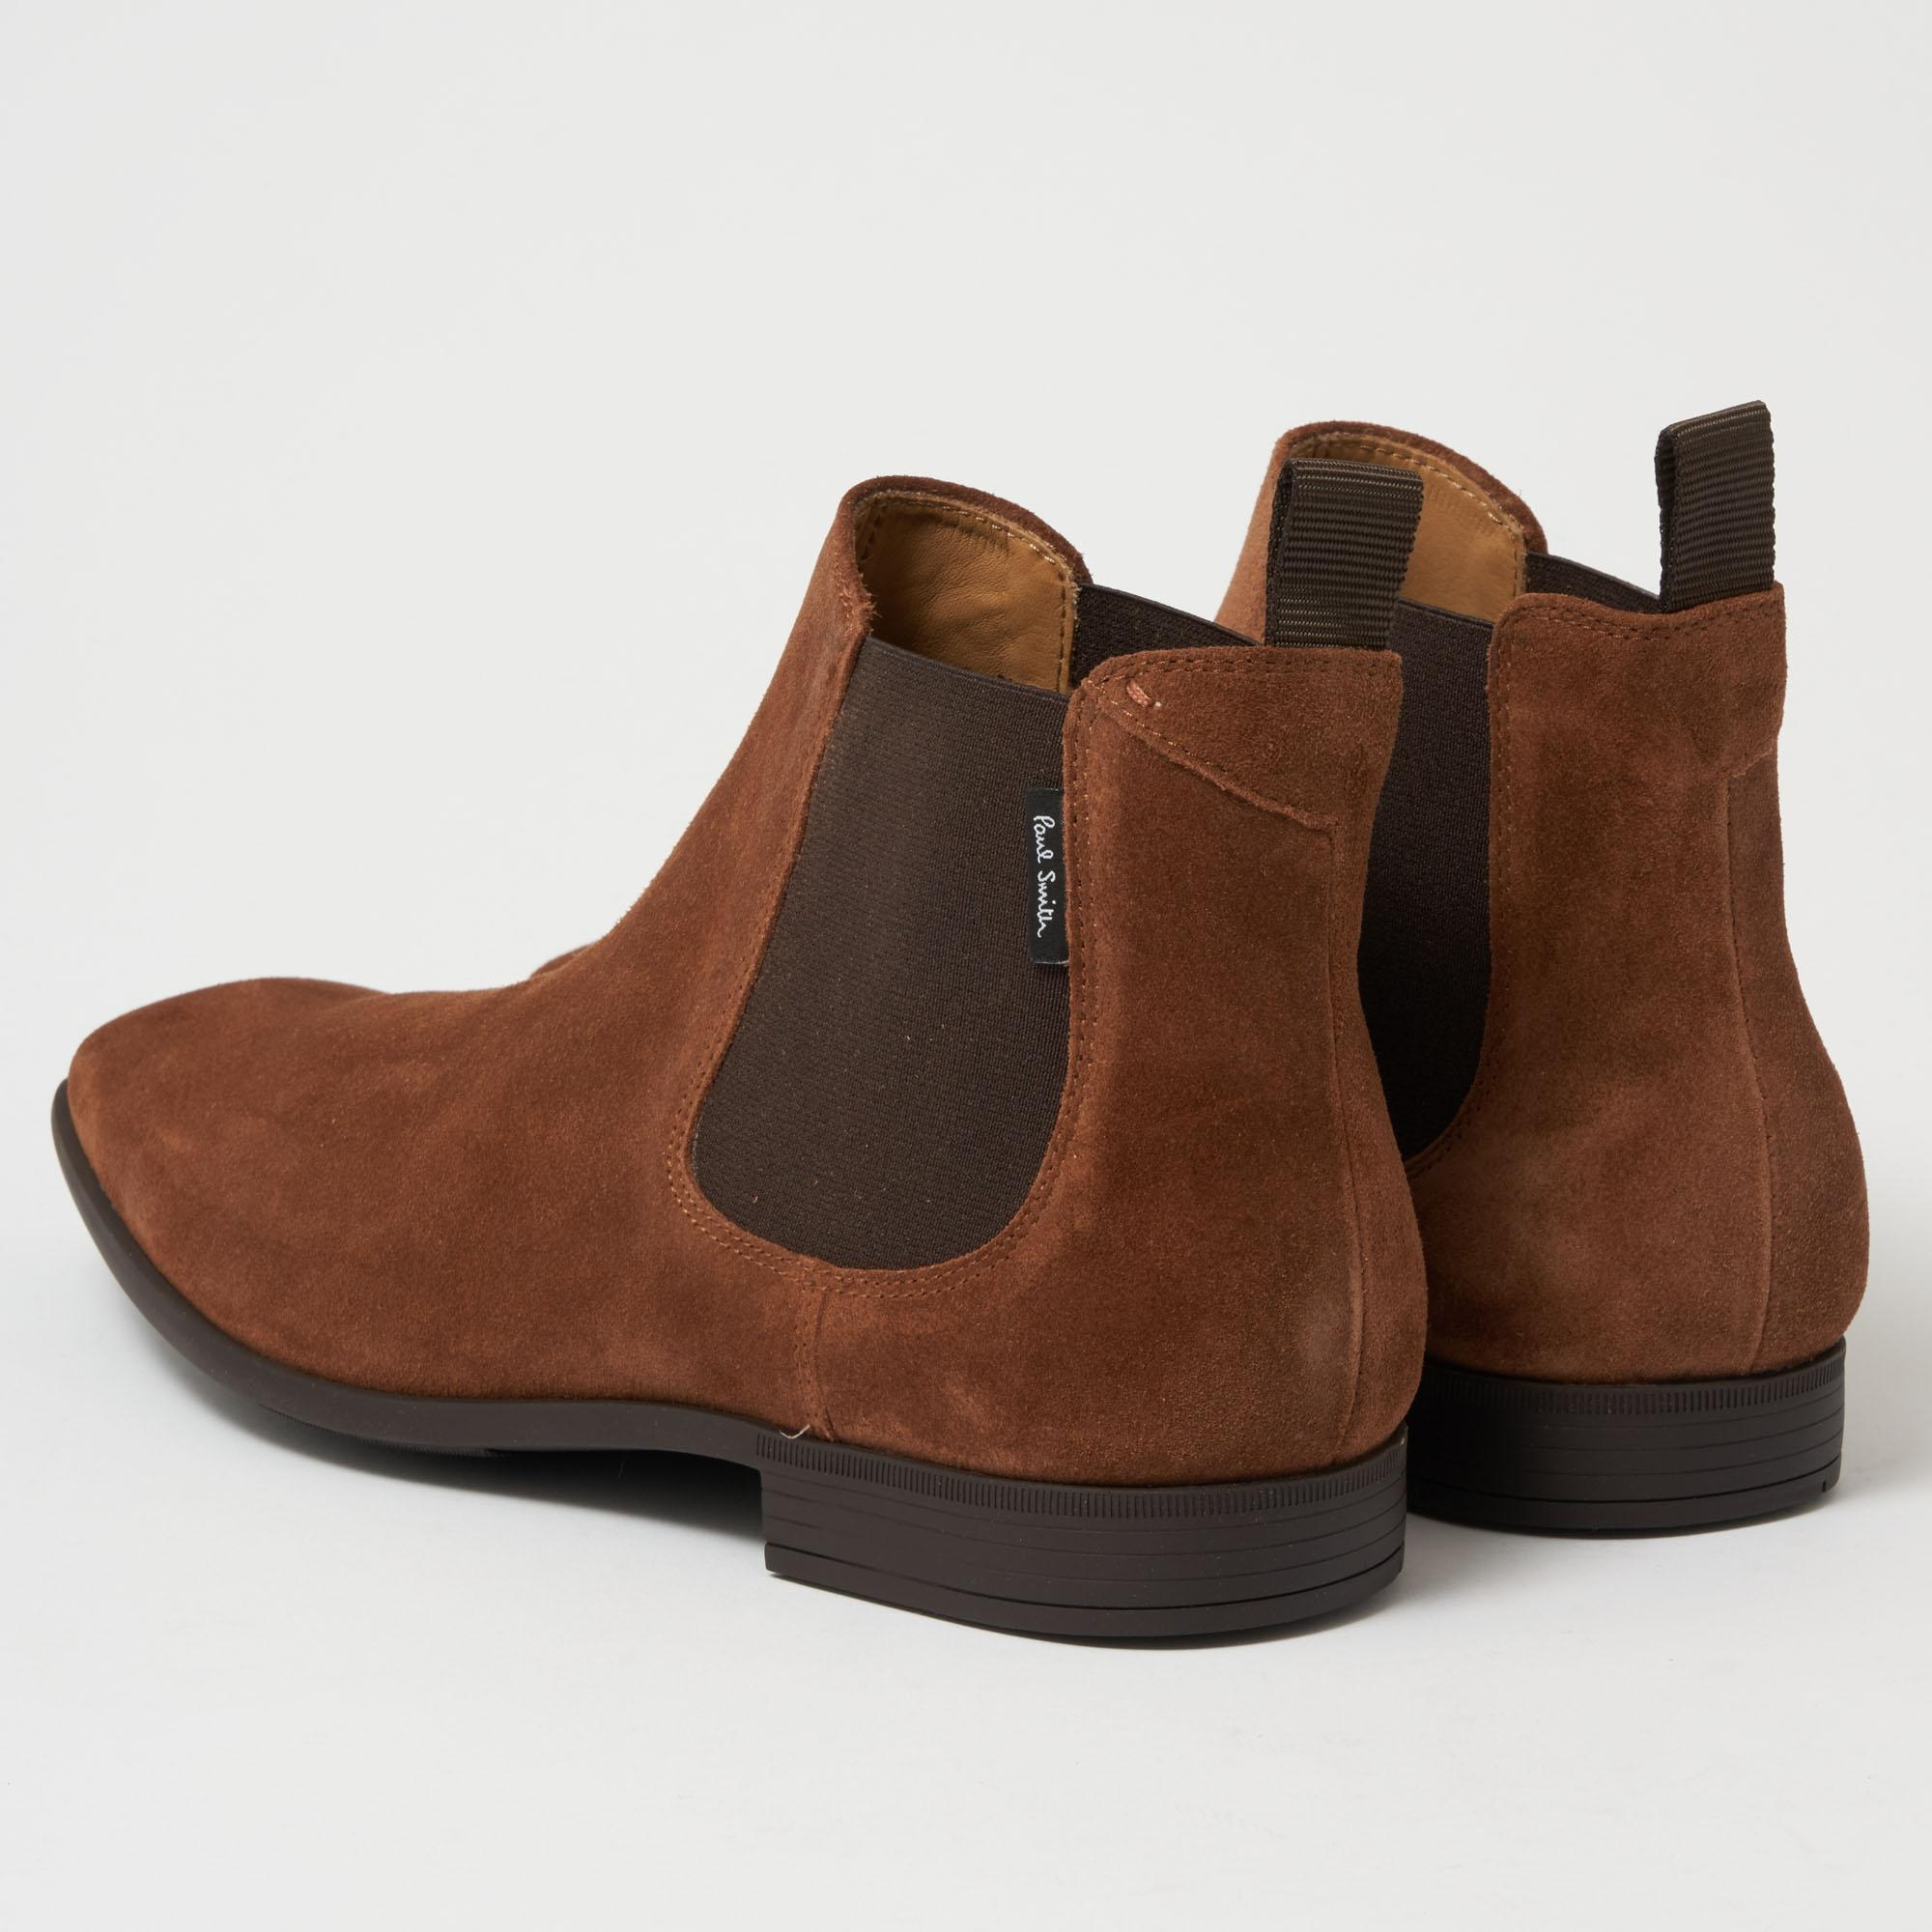 bcd93e8f678 PS by Paul Smith - Brown Falconer Chelsea Boots - Tan for Men - Lyst. View  fullscreen